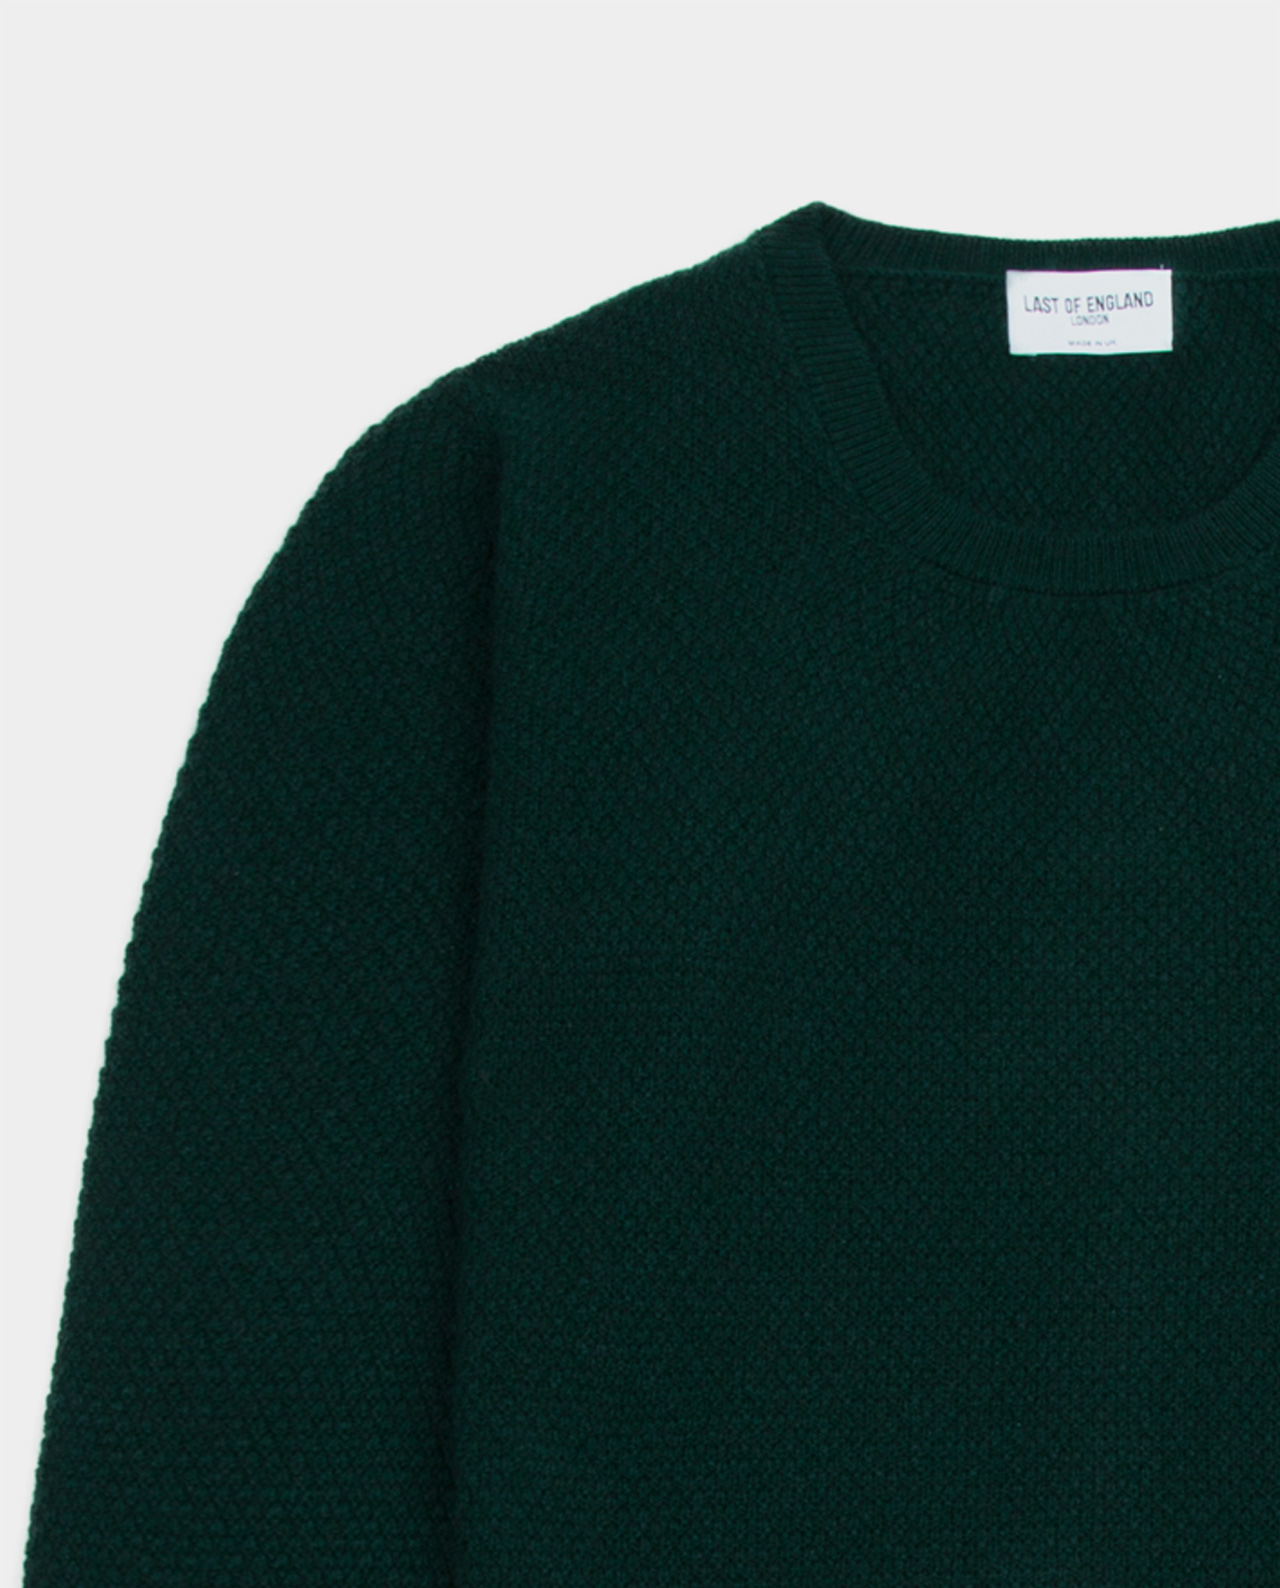 Last of England Moss Stitch Green Jumper